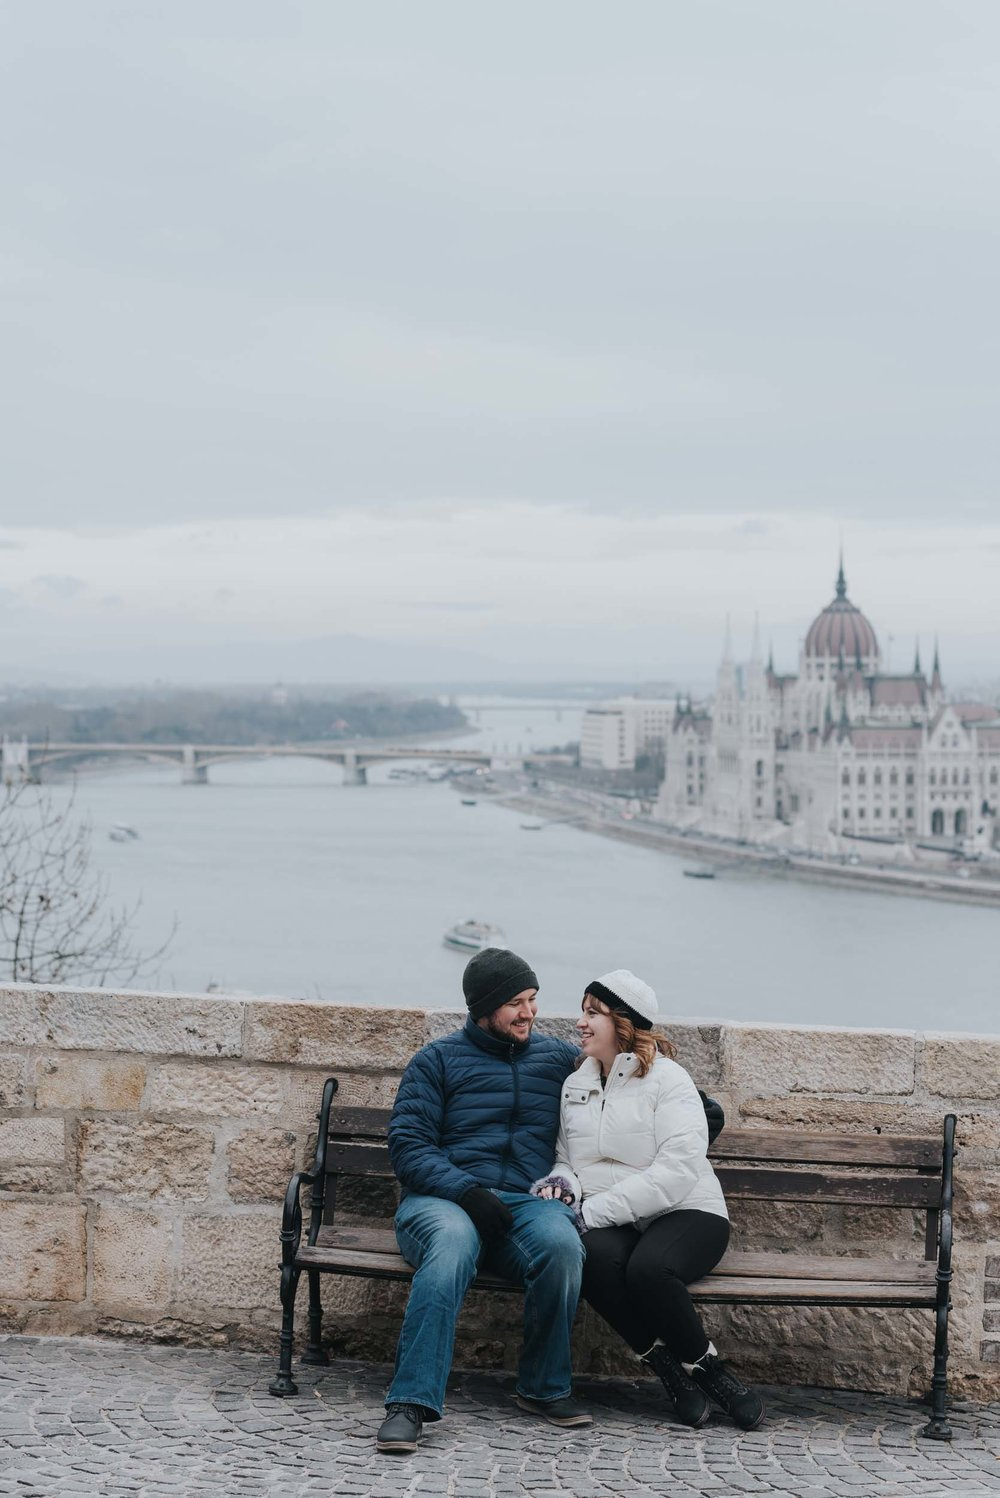 Budapest portrait vacation photography